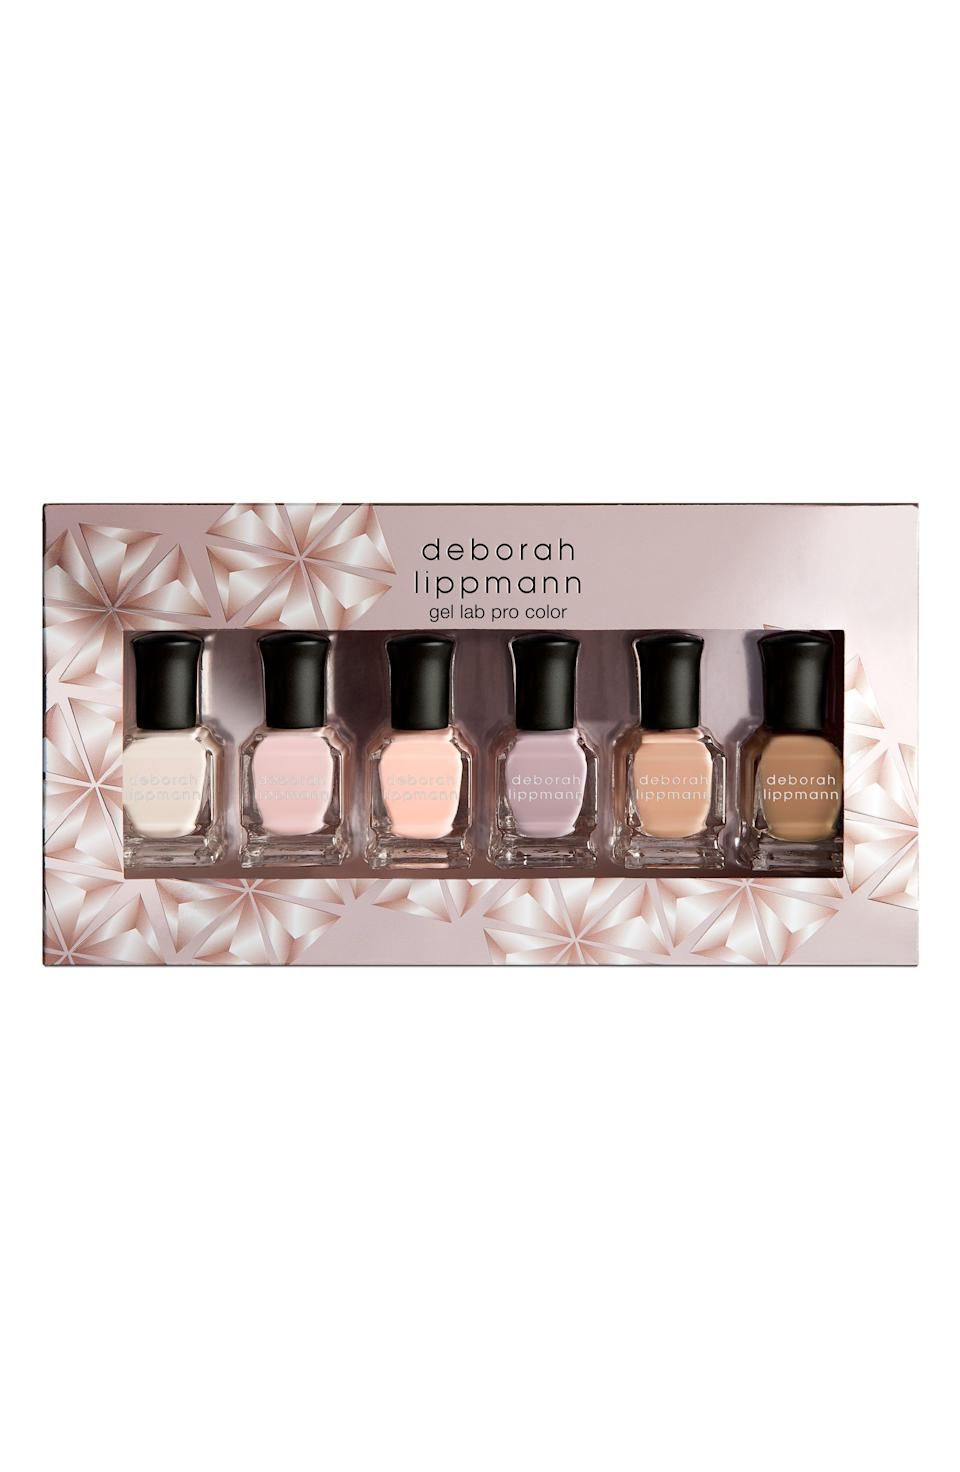 """<p><strong>Deborah Lippmann</strong></p><p><strong>$36.00</strong></p><p><a href=""""https://go.redirectingat.com?id=74968X1596630&url=https%3A%2F%2Fwww.nordstrom.com%2Fs%2Fdeborah-lippmann-undressed-gel-lab-pro-nail-color-set-usd-72-value%2F5394301&sref=https%3A%2F%2Fwww.cosmopolitan.com%2Fstyle-beauty%2Ffashion%2Fg13602855%2Fbest-gift-ideas-for-women%2F"""" rel=""""nofollow noopener"""" target=""""_blank"""" data-ylk=""""slk:Shop Now"""" class=""""link rapid-noclick-resp"""">Shop Now</a></p><p>You know she likes to sport a different nail color every week. So get her a pretty polish set that has a range of neutral and pastel shades suited for all occasions.</p>"""